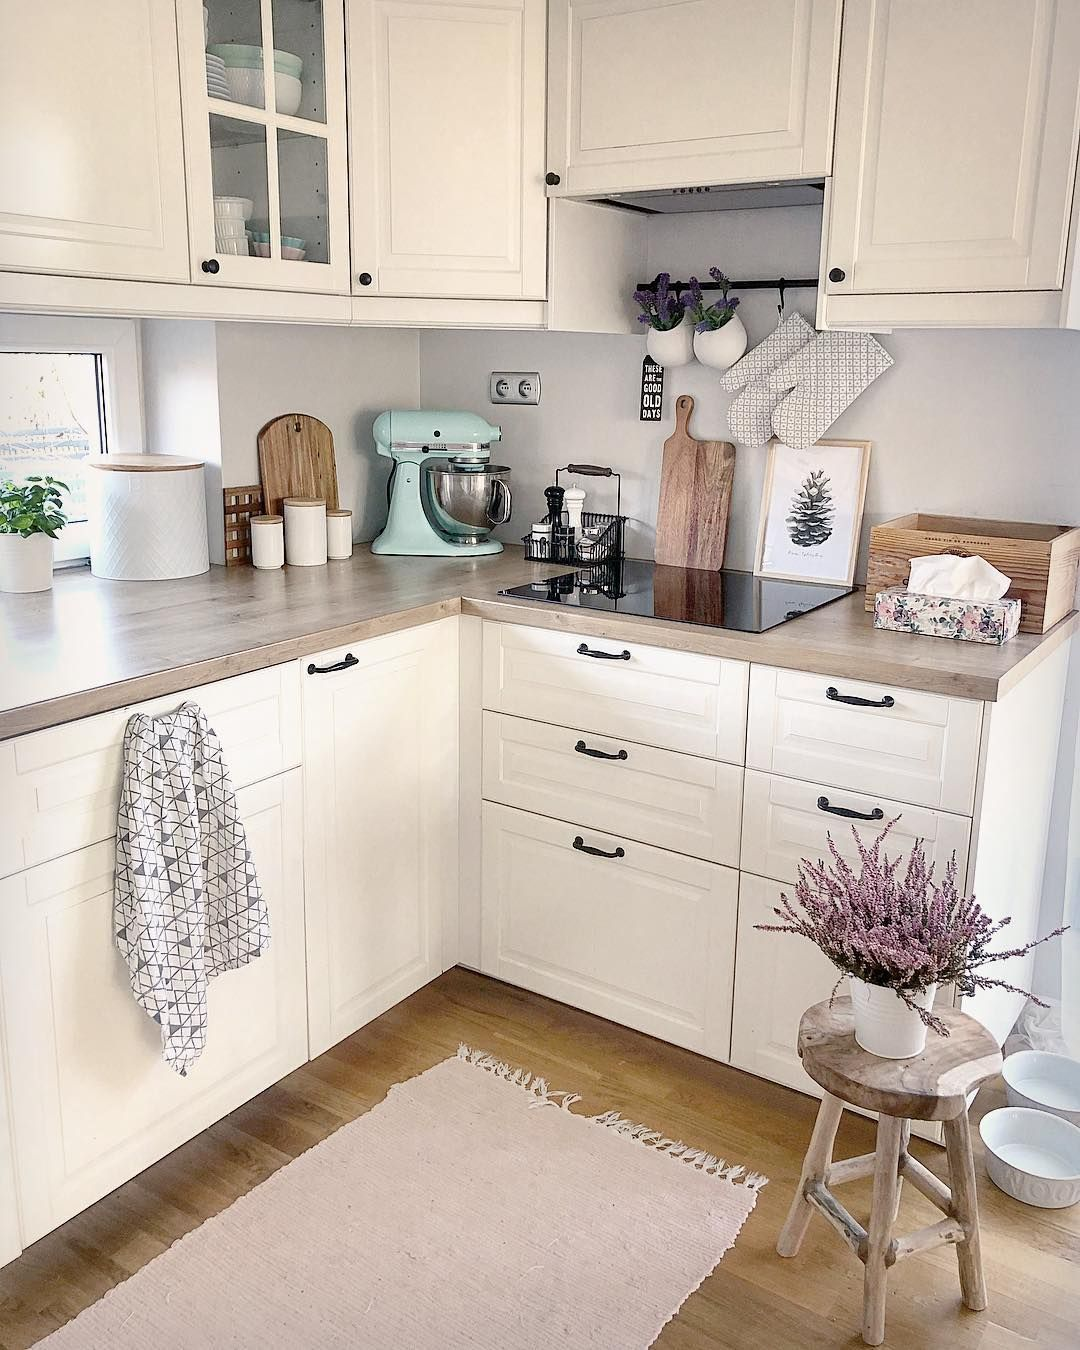 49 Small Kitchen Ideas That Will Make You Feel Roomy | Small Kitchen